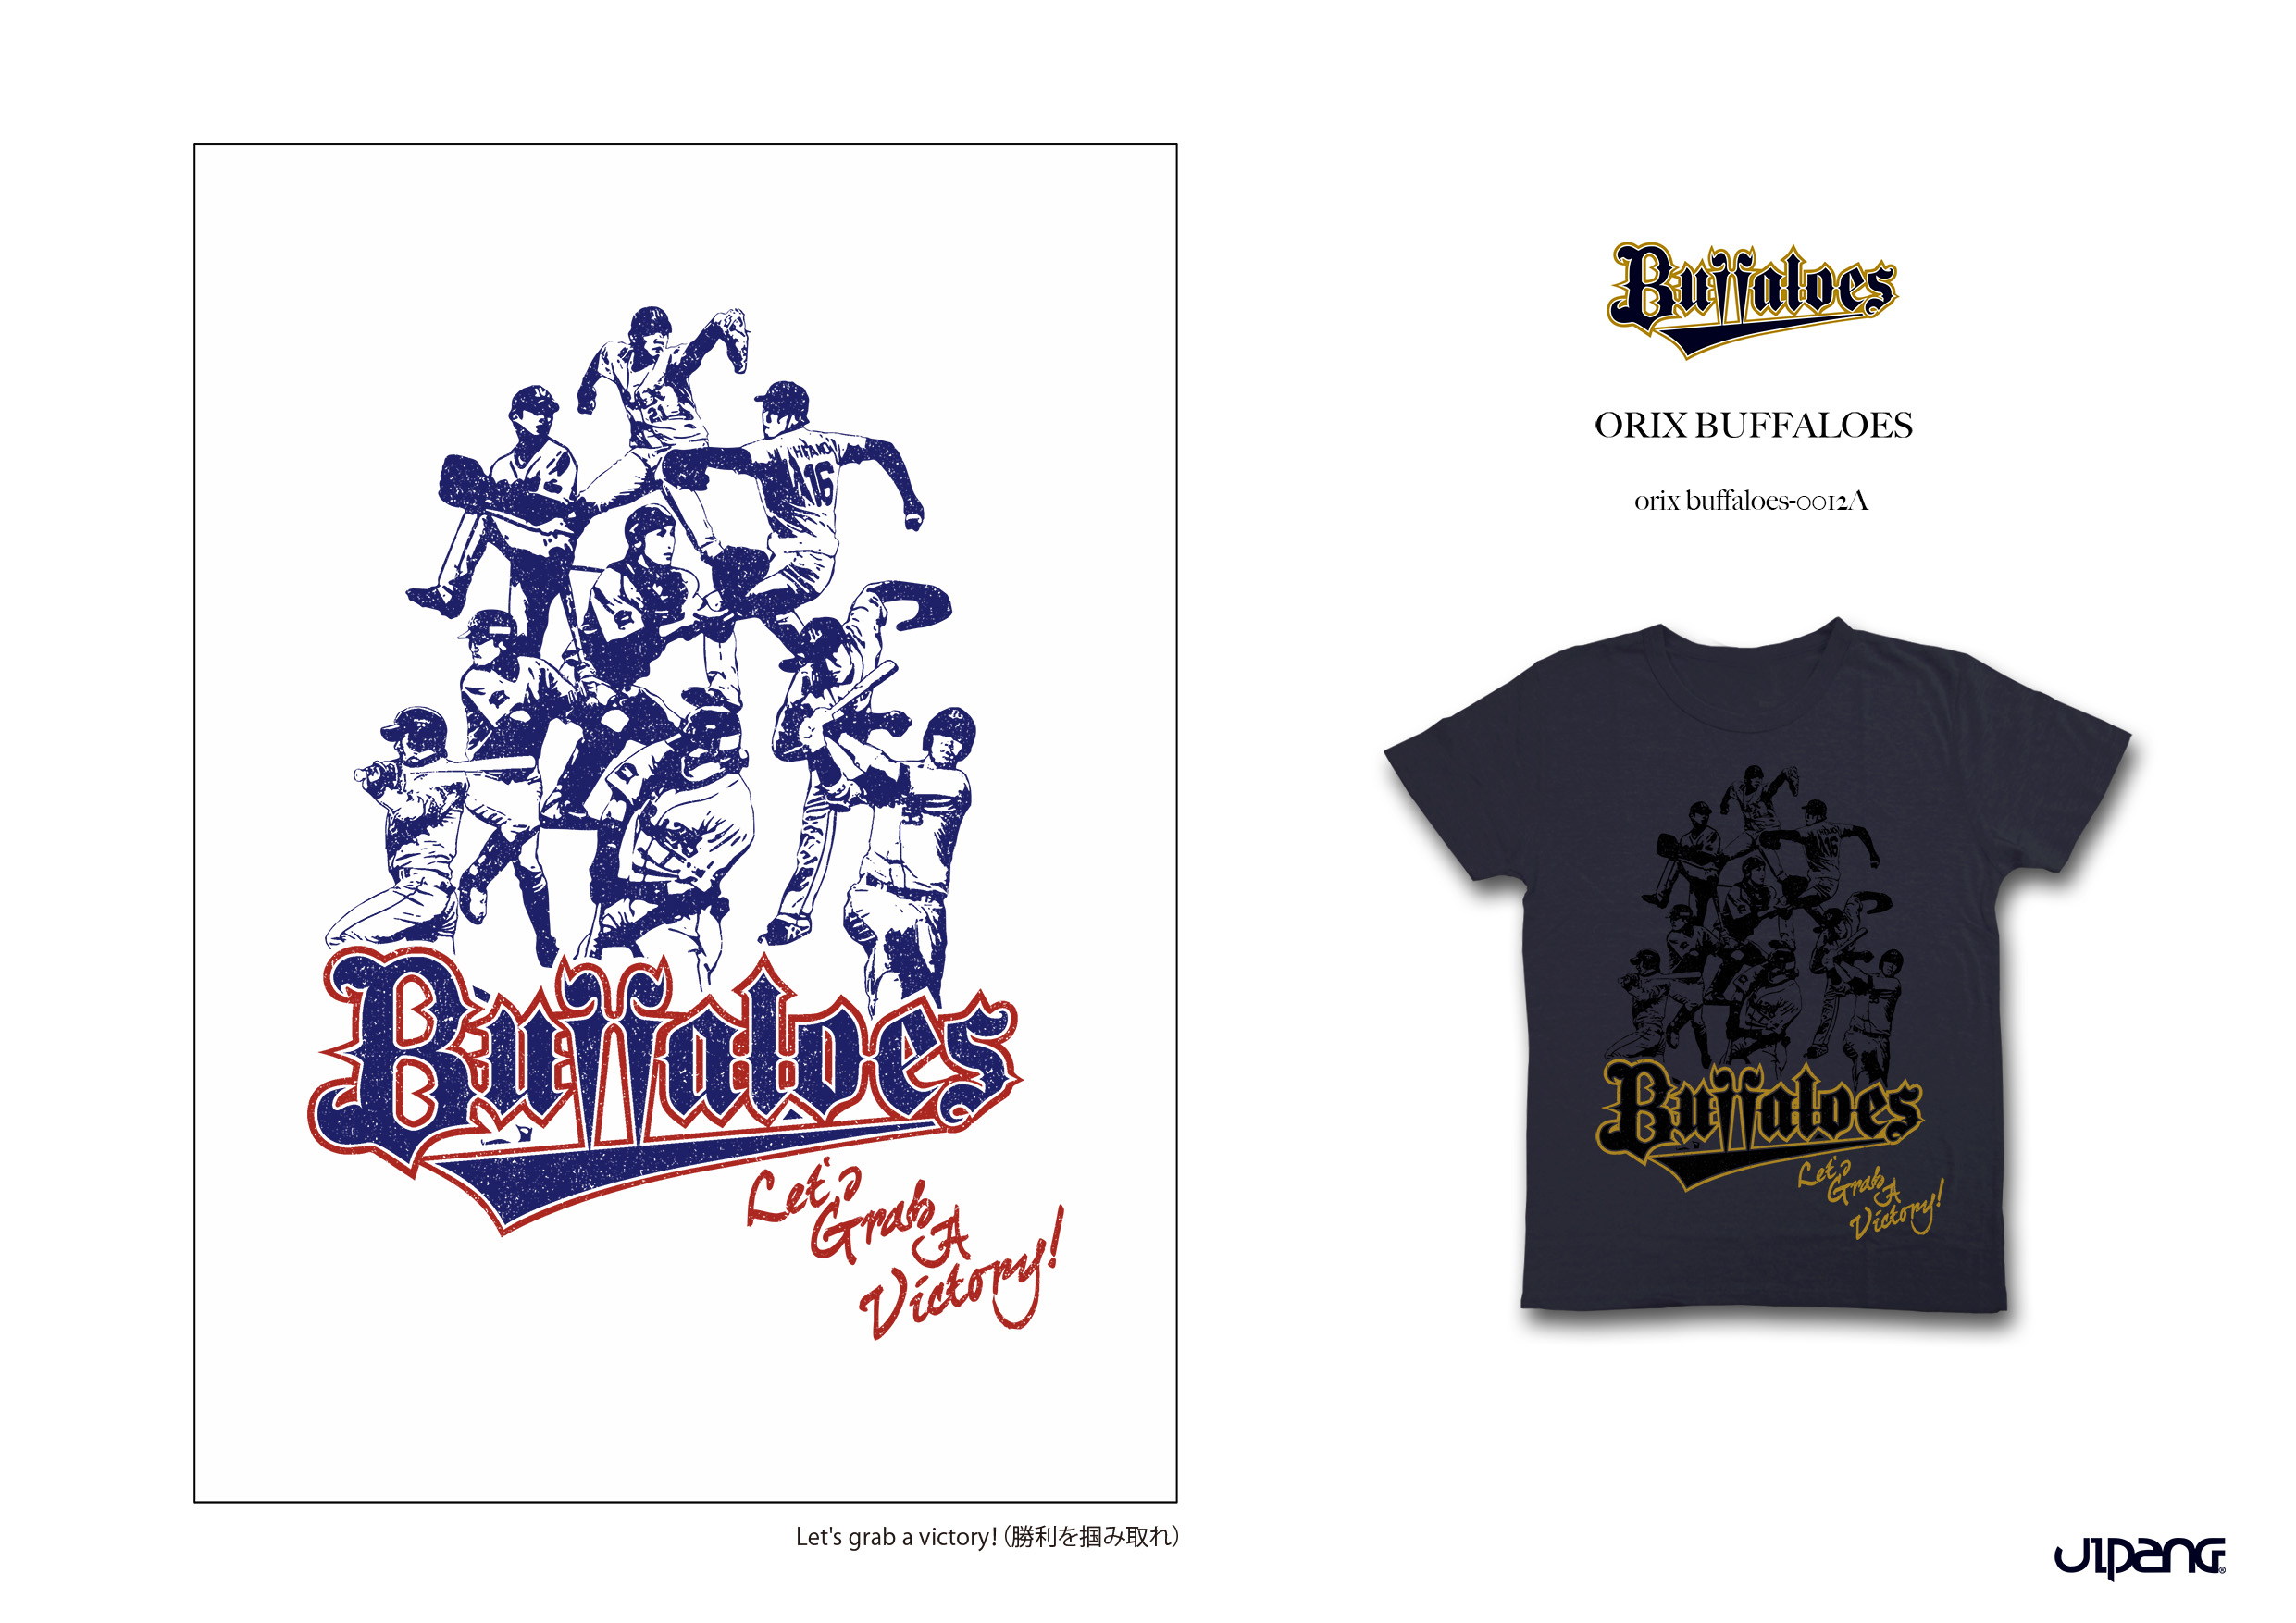 IMAGE T BUFFALOES-0012A のコピー